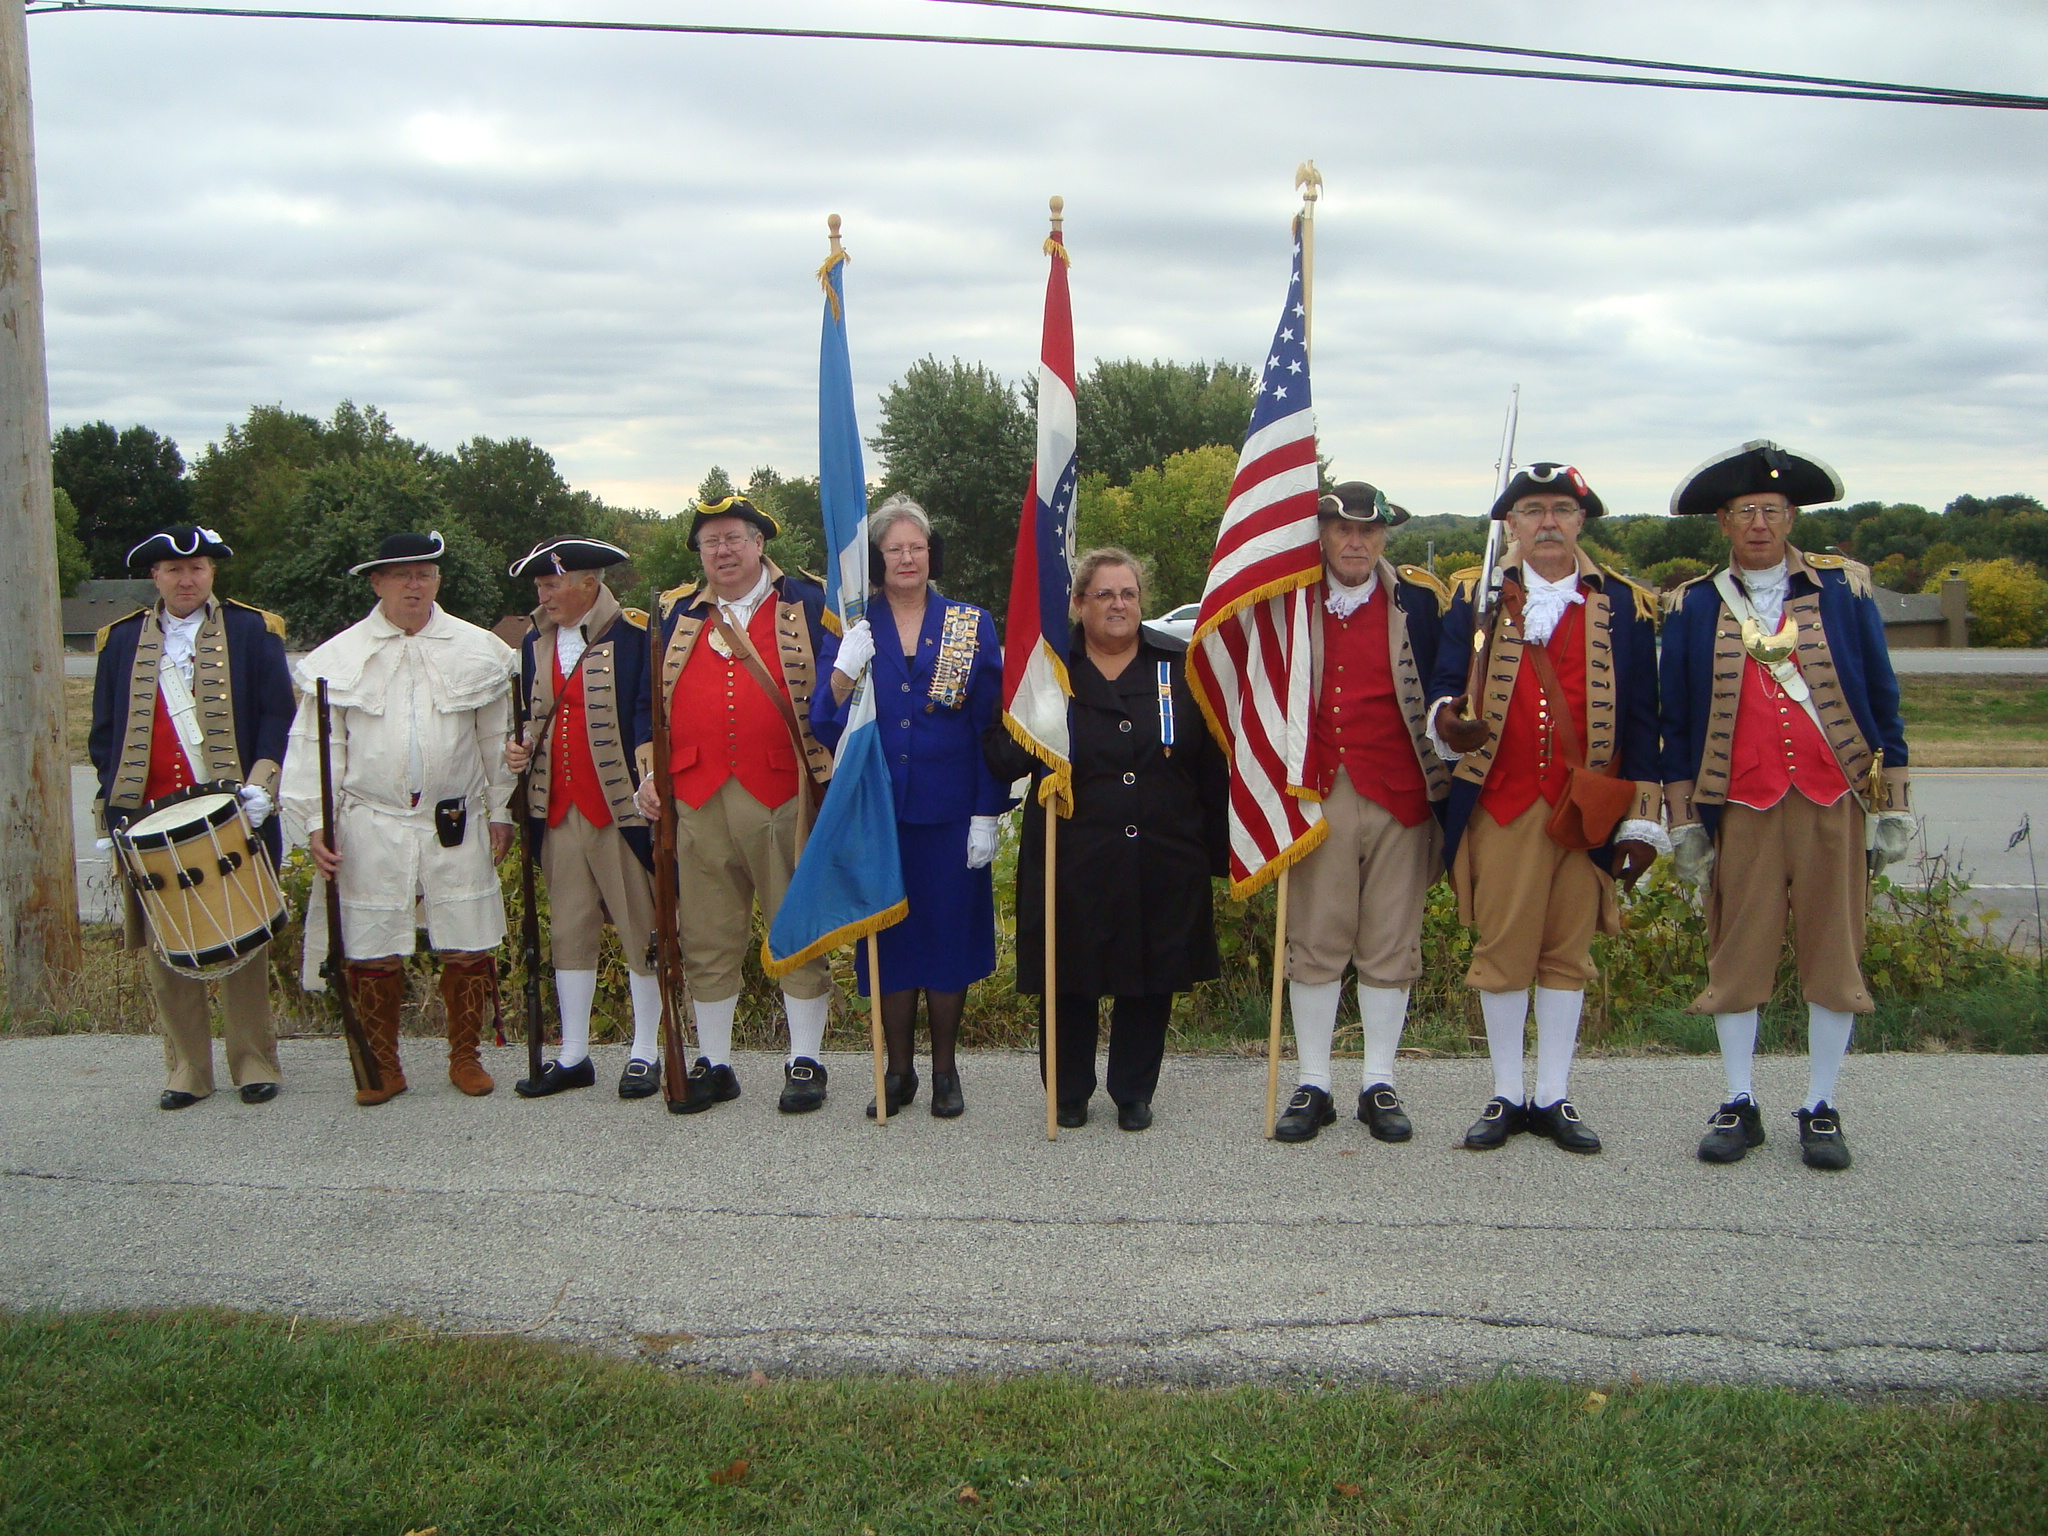 Pictured here is the MOSSAR Color Guard team at a Grave Marking for Eleanor Jean Creason Shafer, an Independence Pioneers Chapter DAR Chapter member who is buried at Salem Cemetery in Independence, Missouri. The MOSSAR Color Guard team is shown here on Wednesday, October 16, 2013.